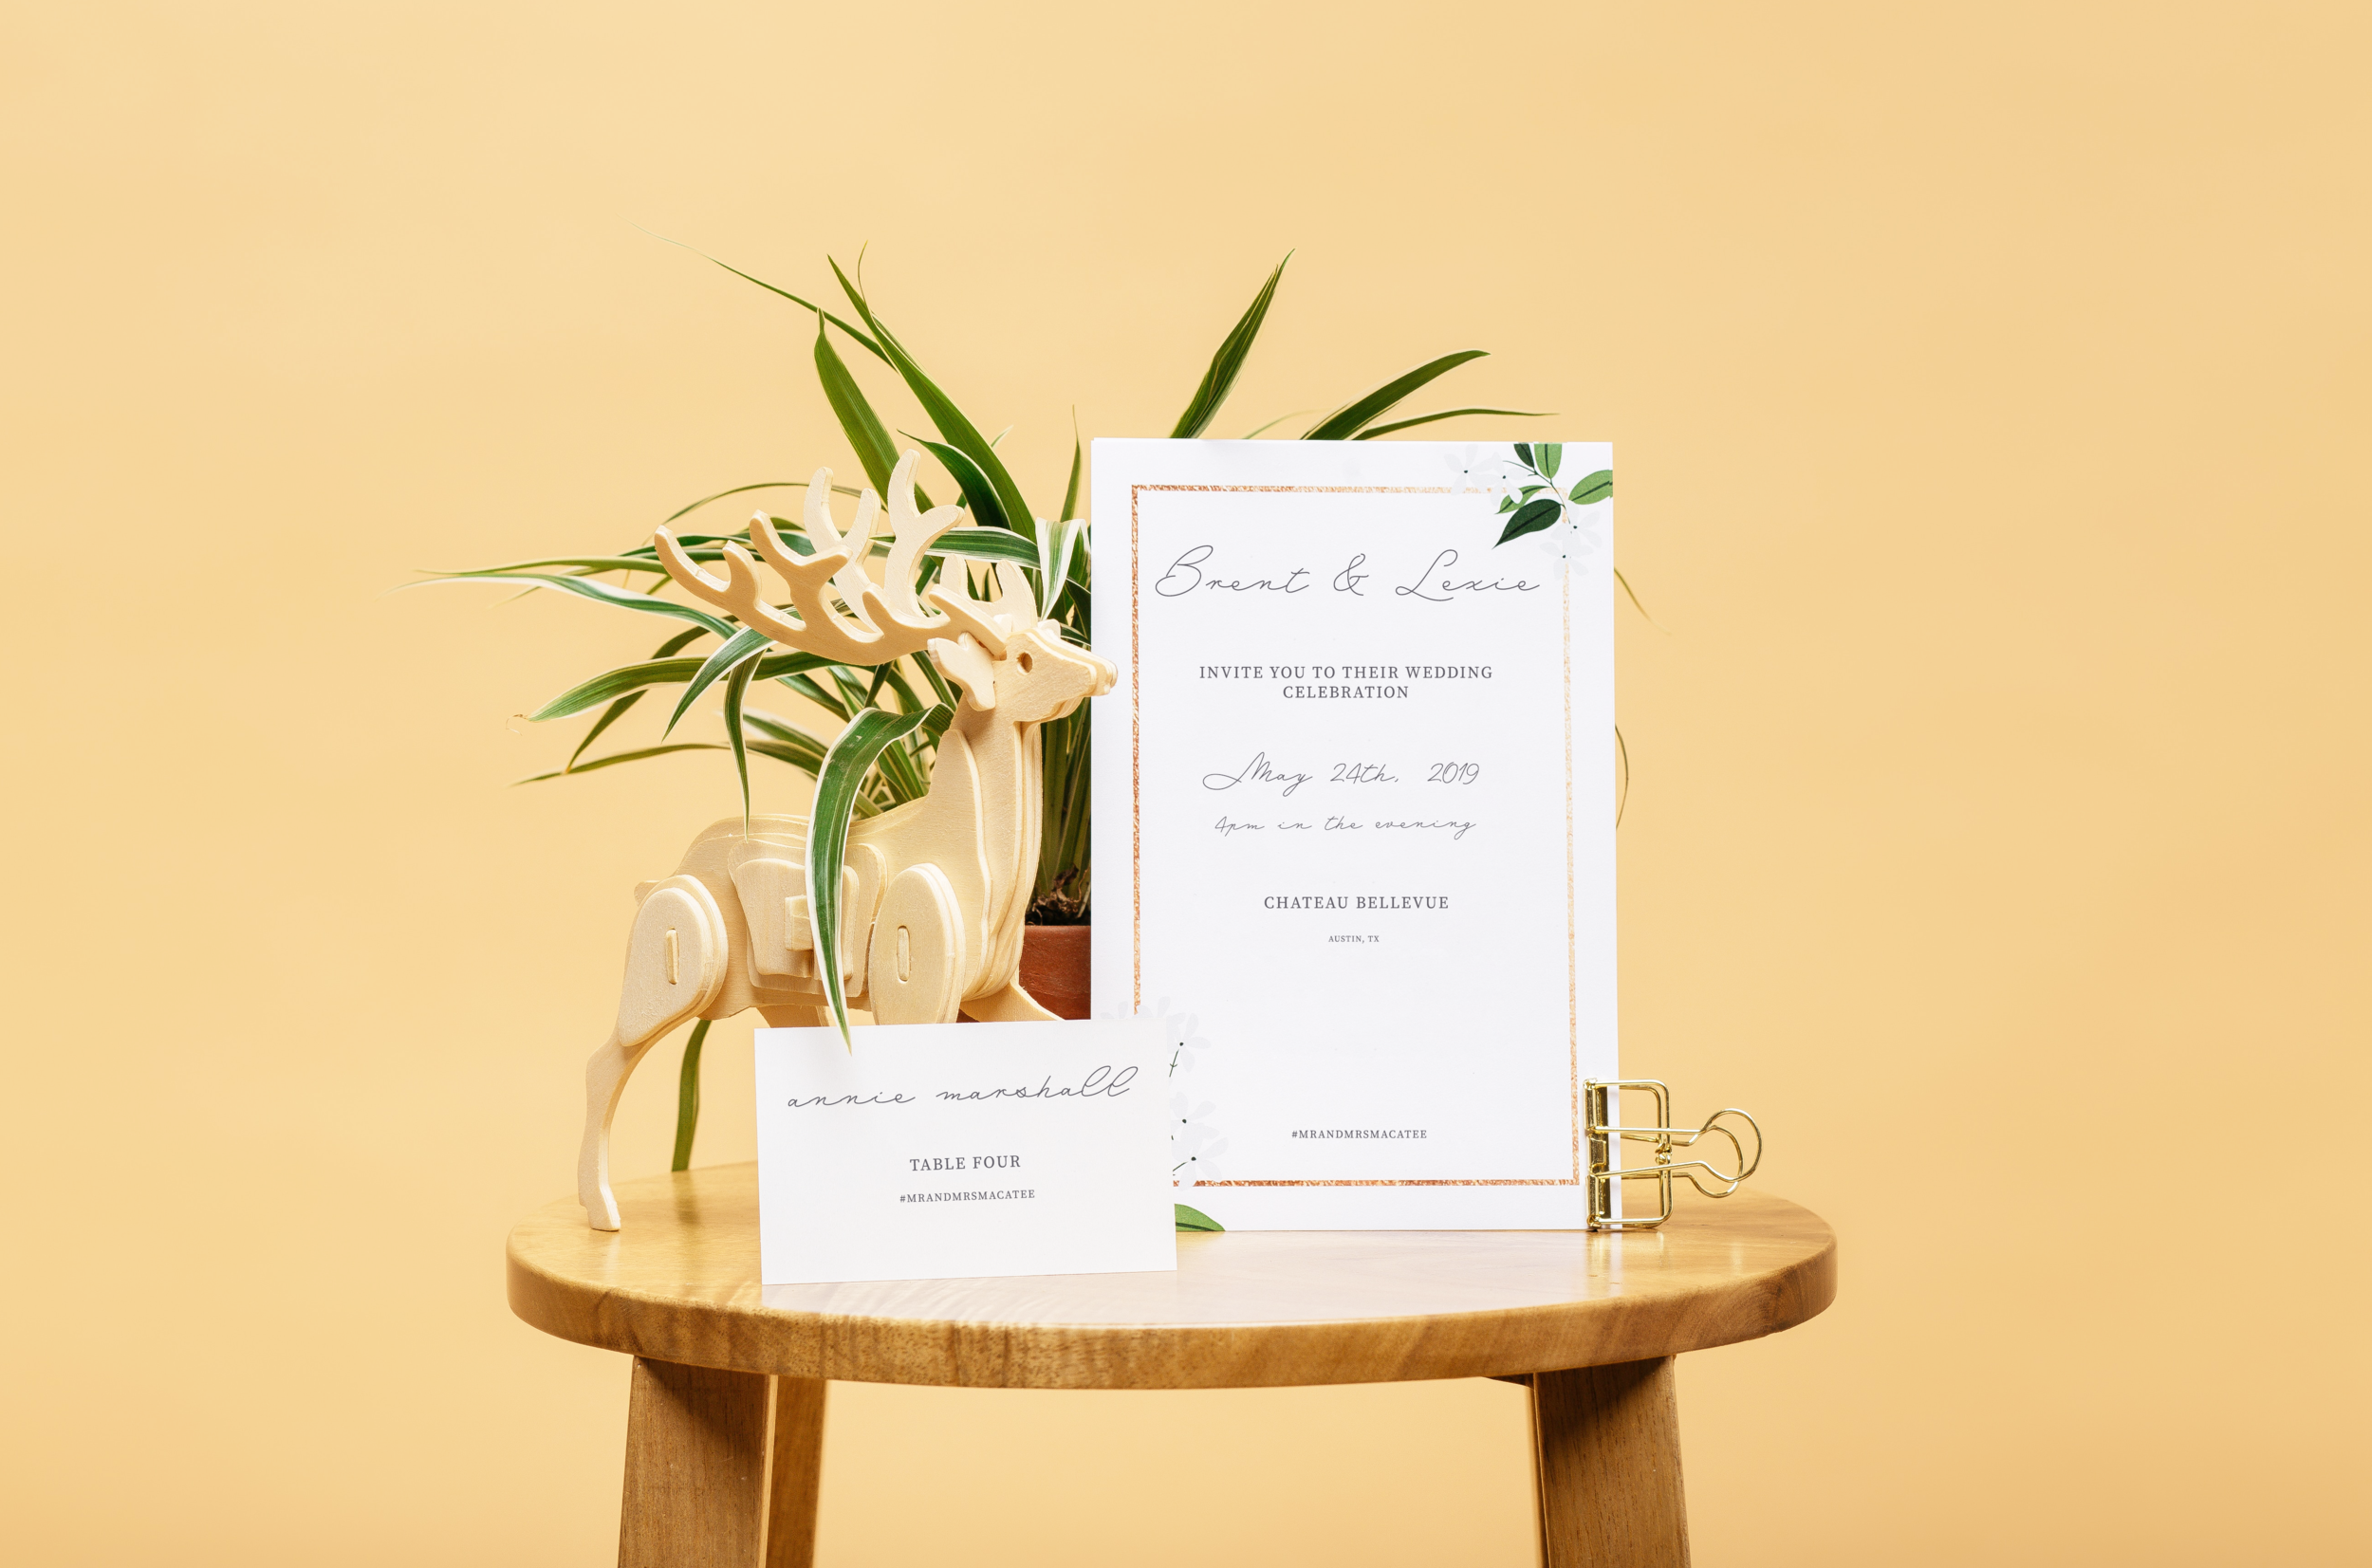 Invitation/Table Placement Card Design, 2019